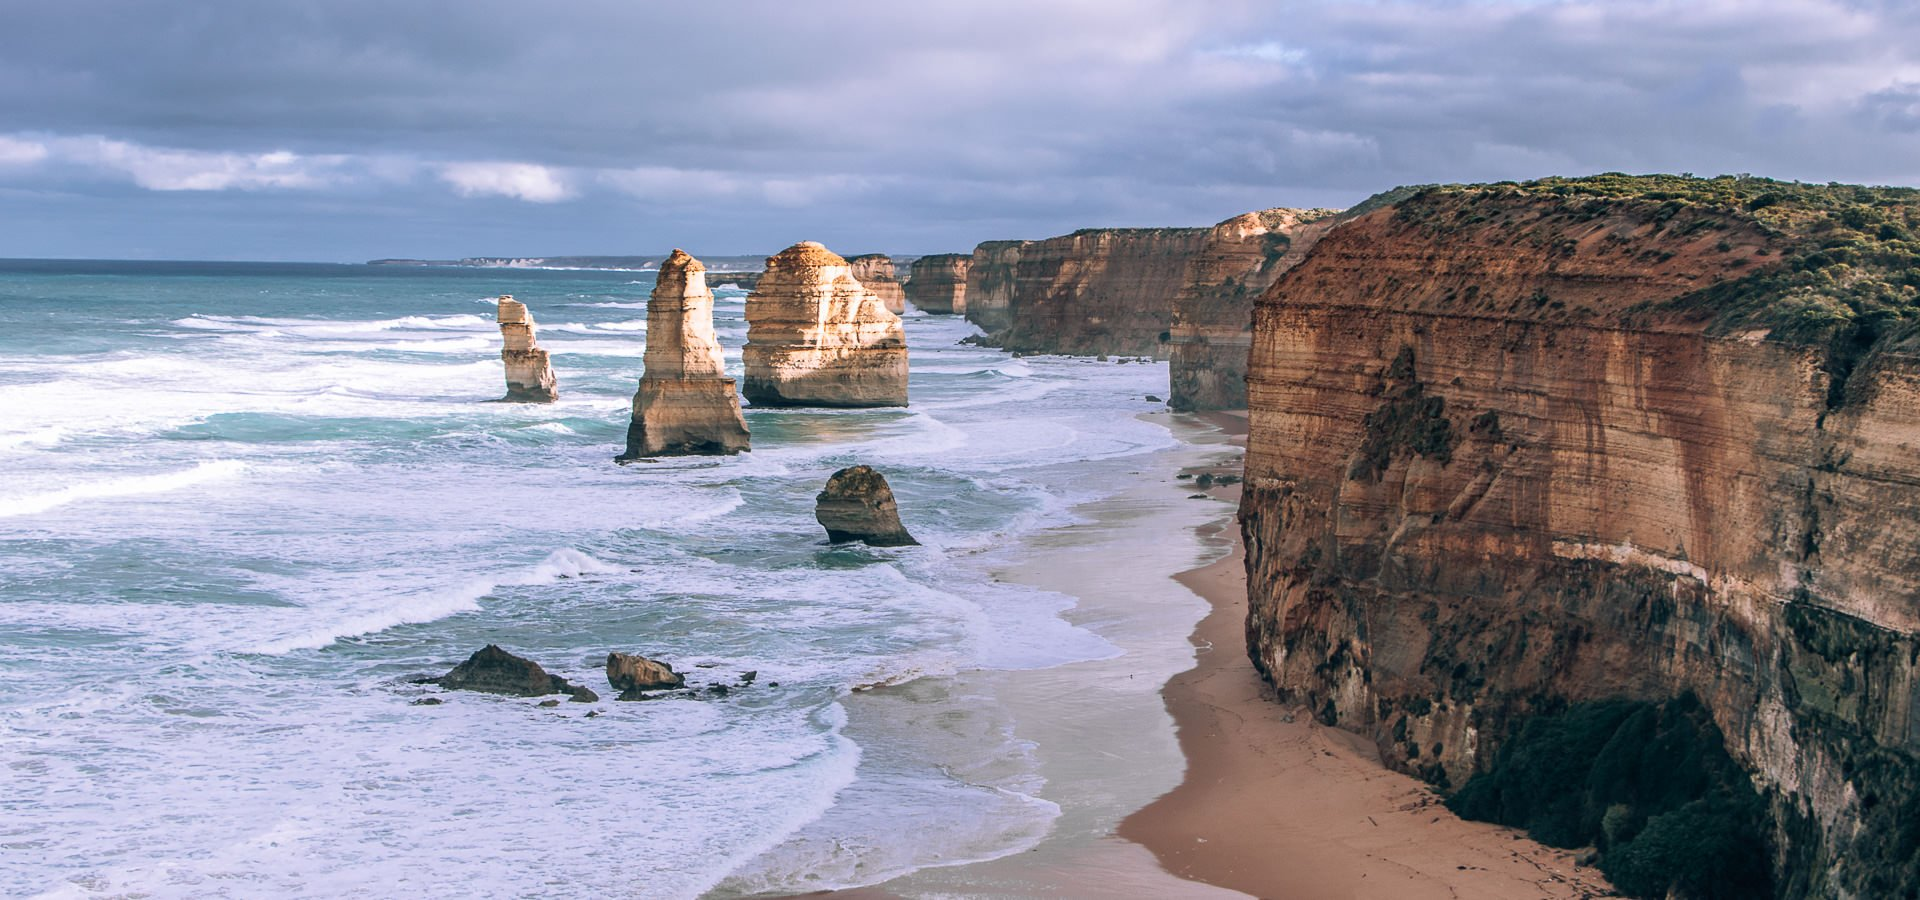 Beach Destinations Australia | 25 Sensational Places To Visit | beach destinations australia 14